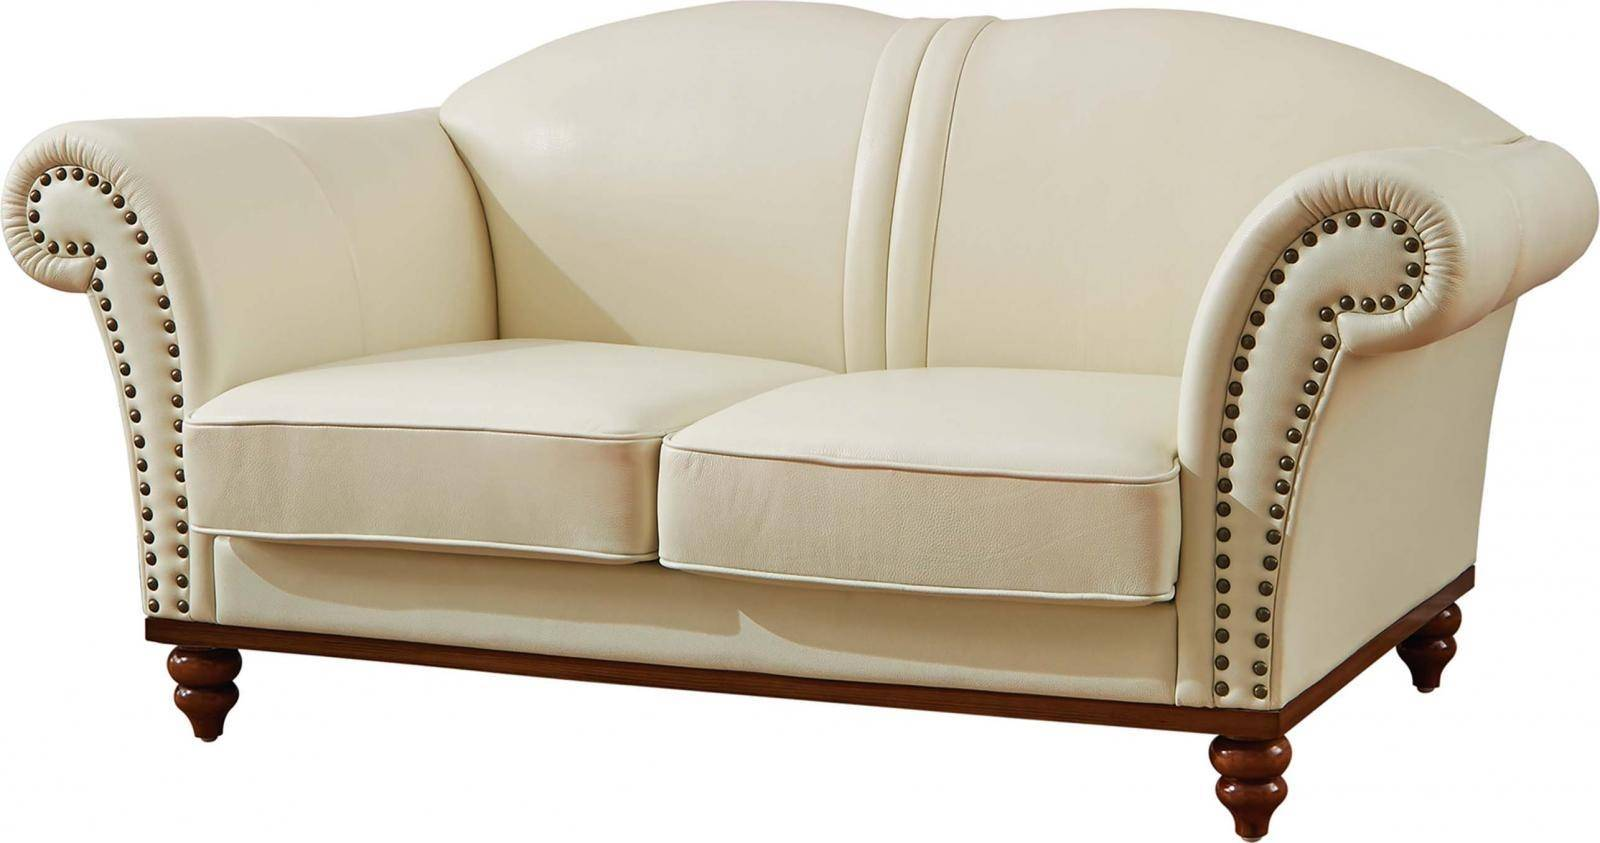 ESF 2601 Ivory Italian Leather Living Room Sofa Set 2Pcs ...